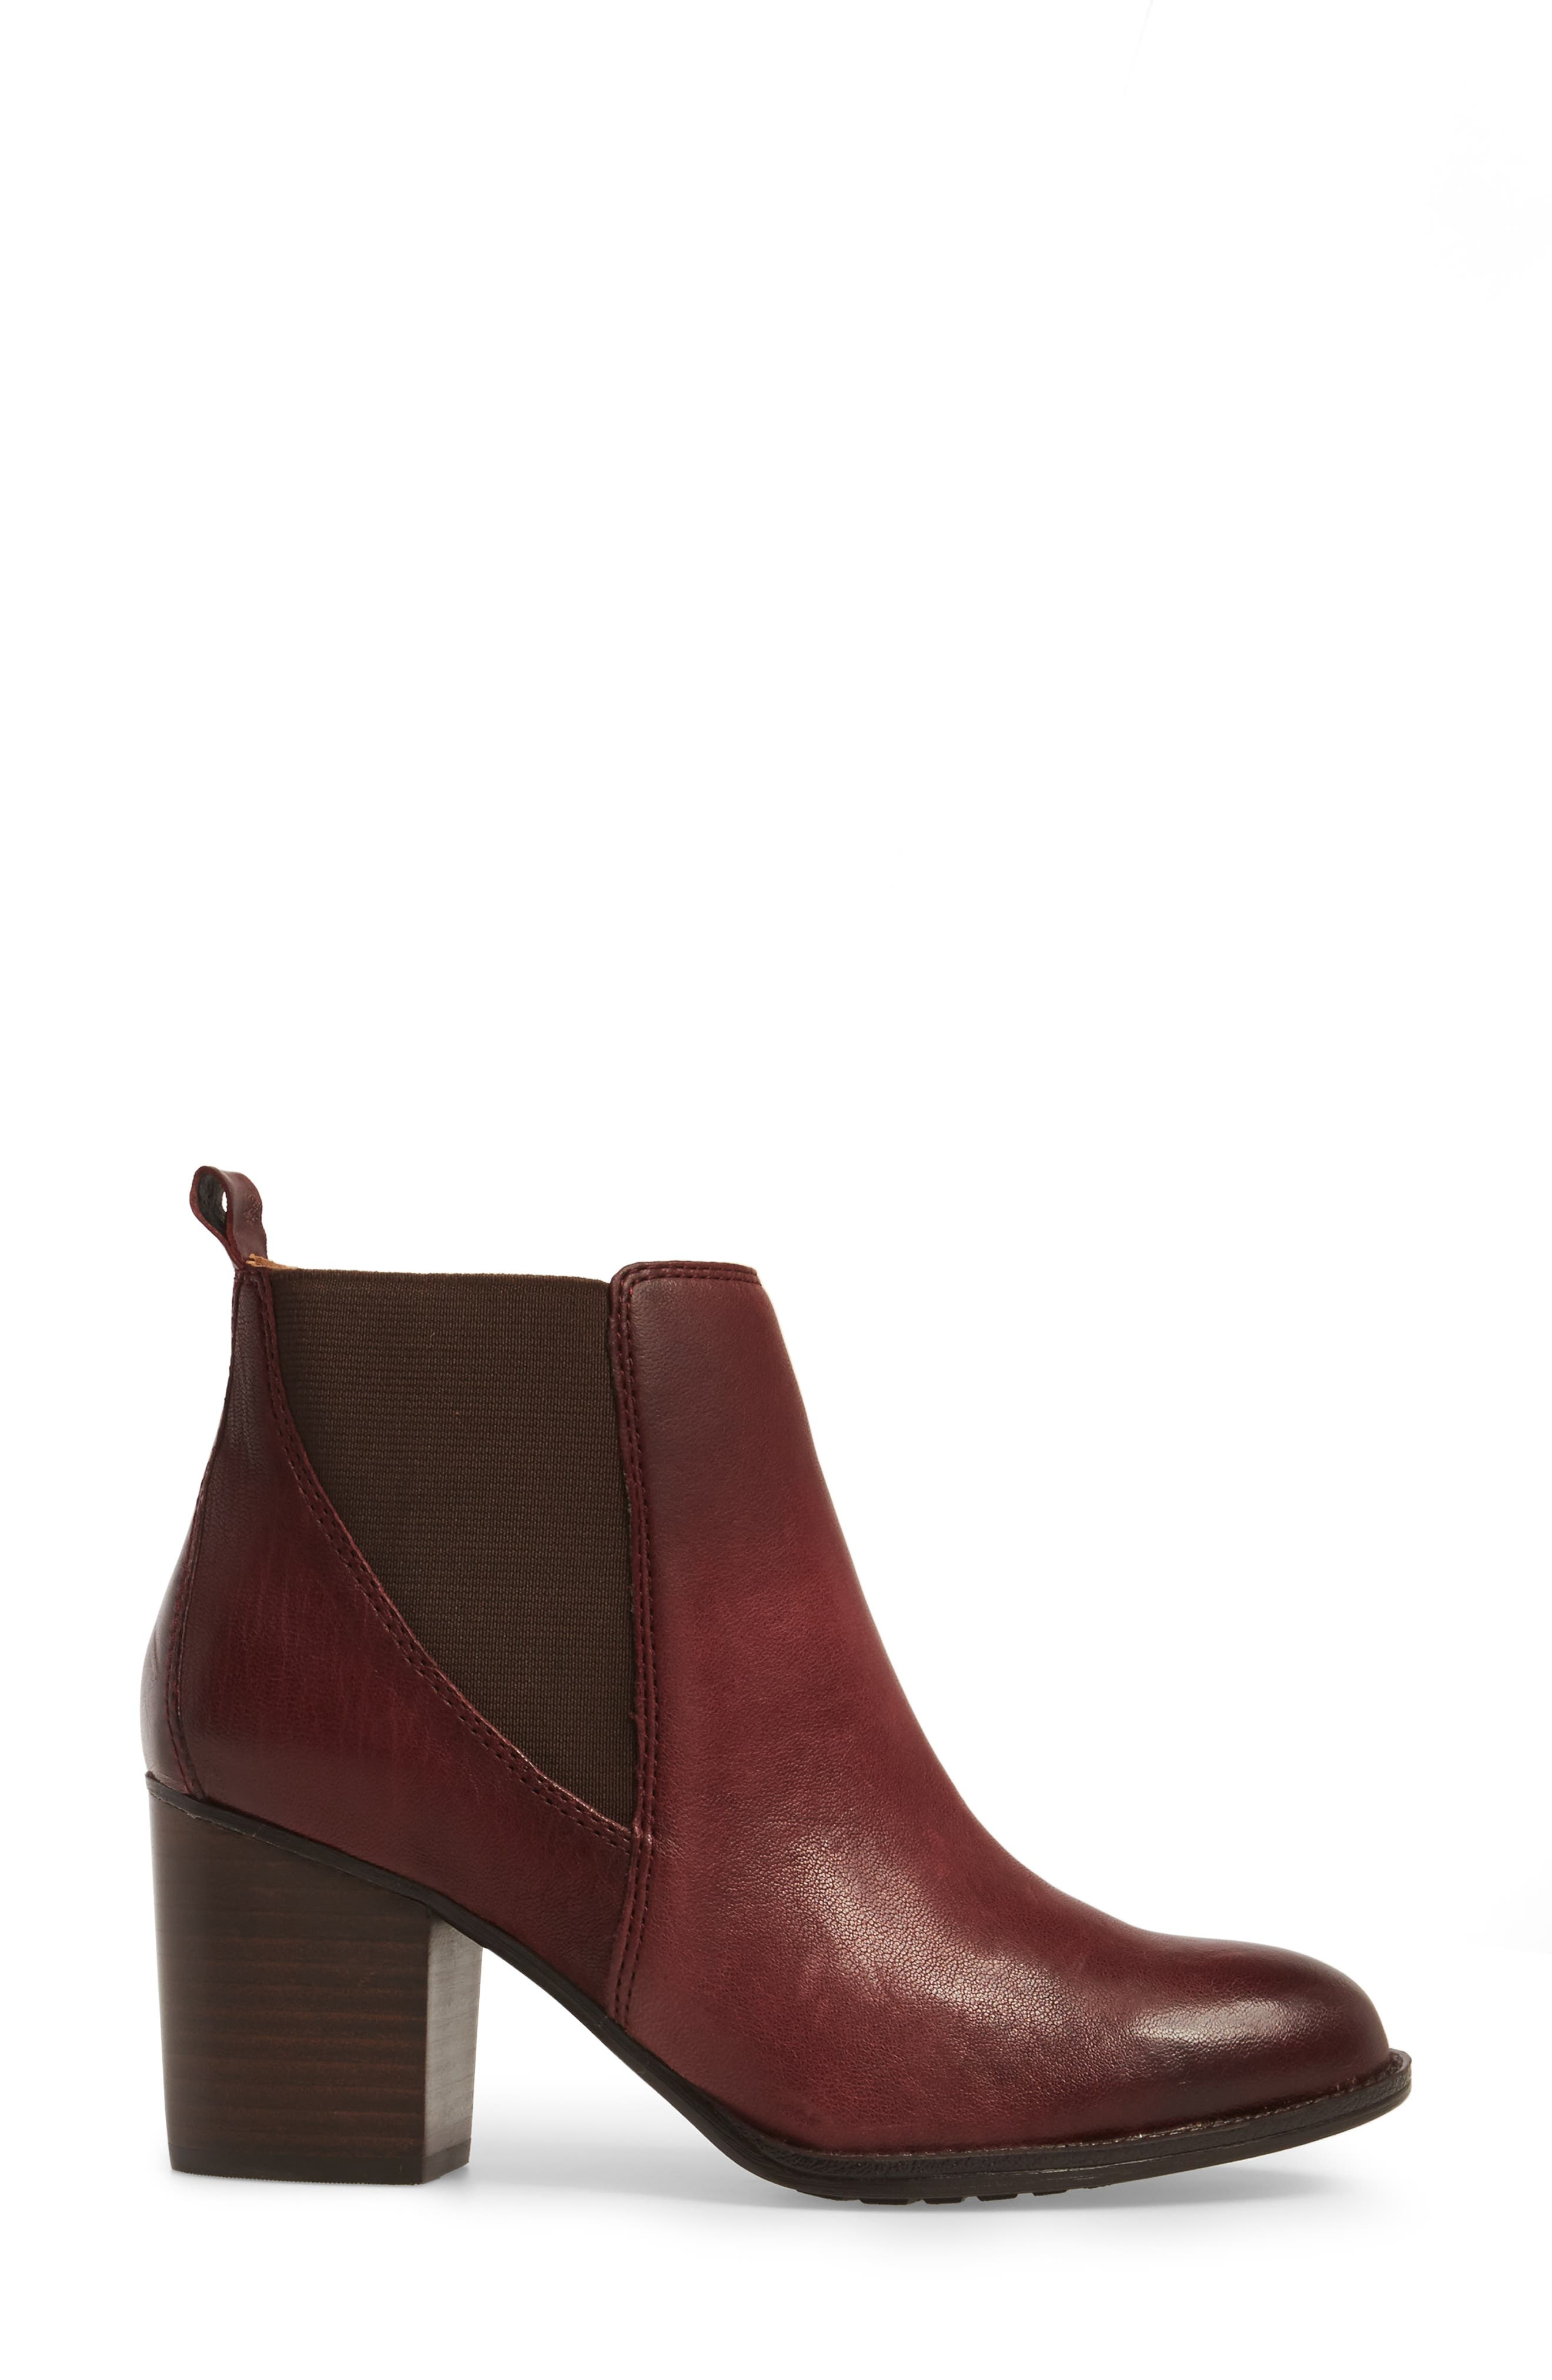 Welling Bootie,                             Alternate thumbnail 3, color,                             Wine Red Leather